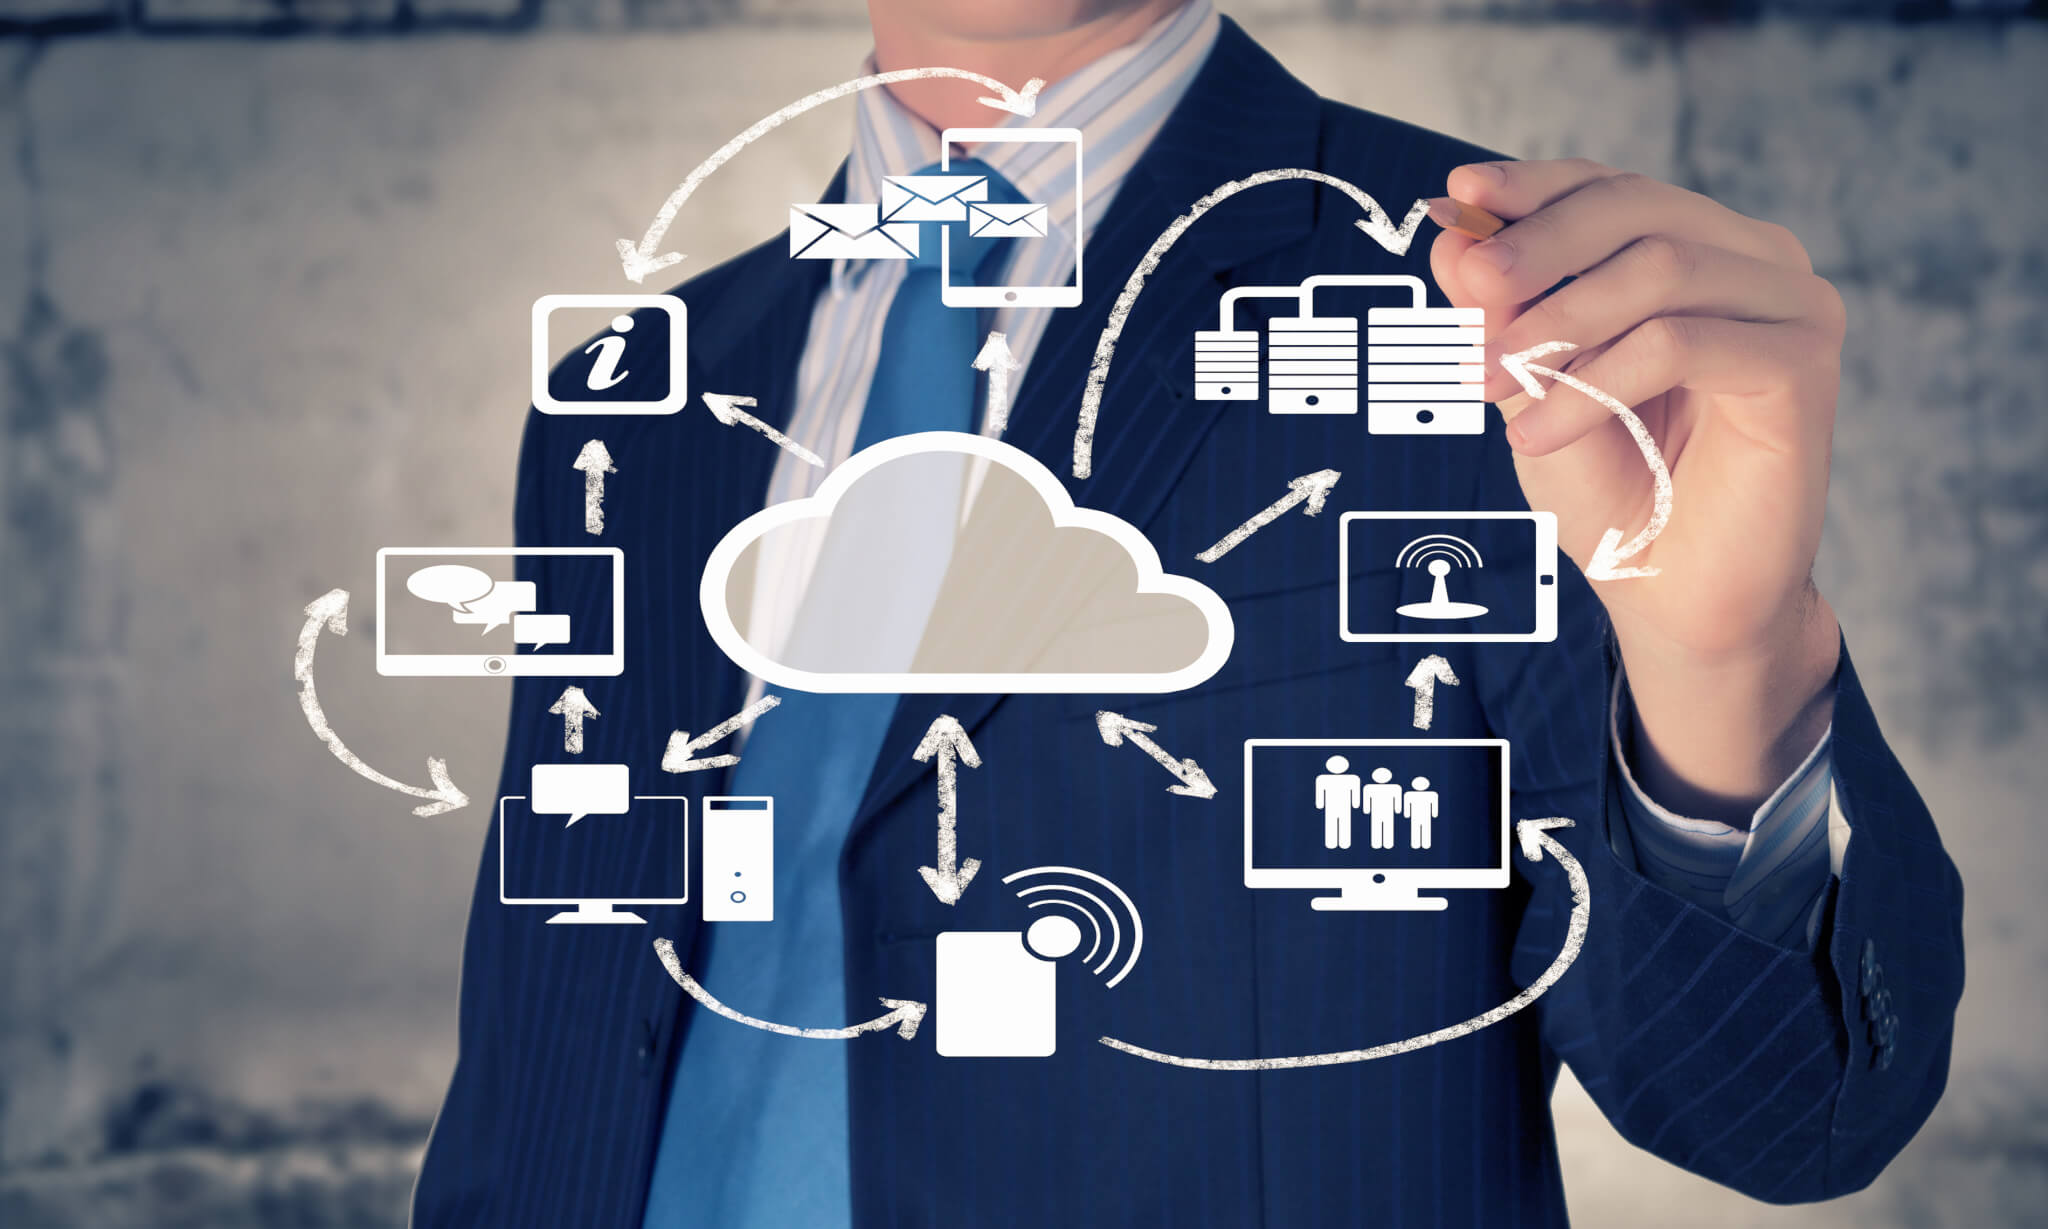 Benefits of cloud in an organization